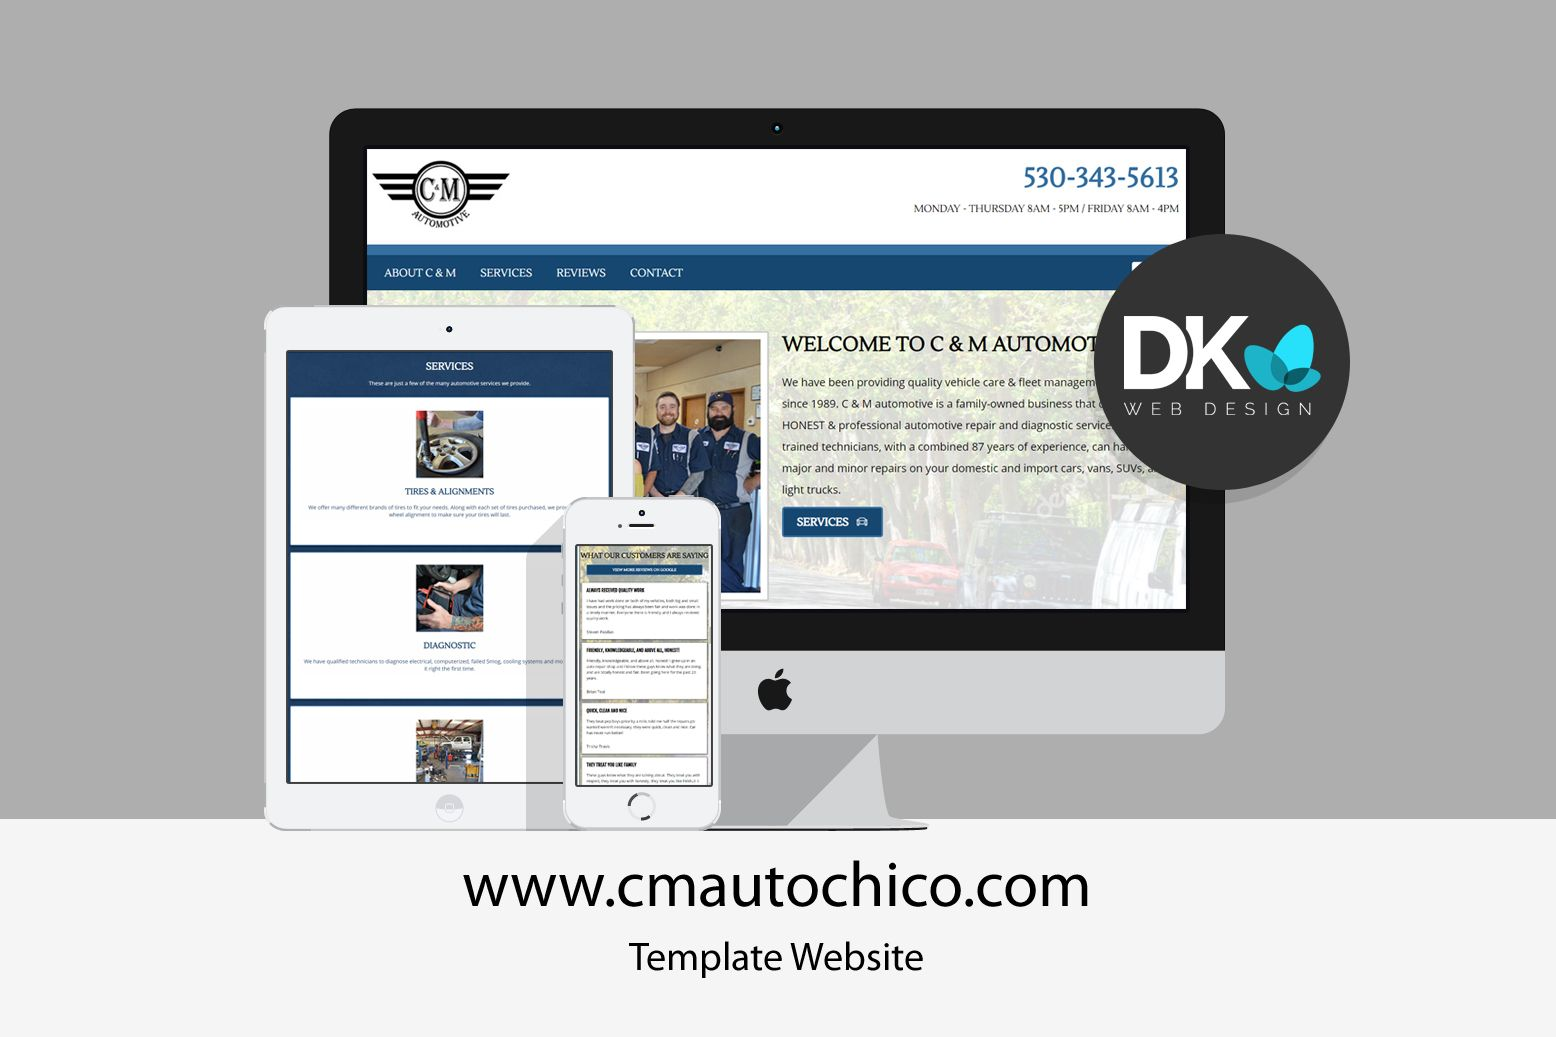 We Recently Designed A Template Website For A Local Automotive Shop Chicoca California Community Webdesig With Images Website Template Web Design Portfolio Web Design